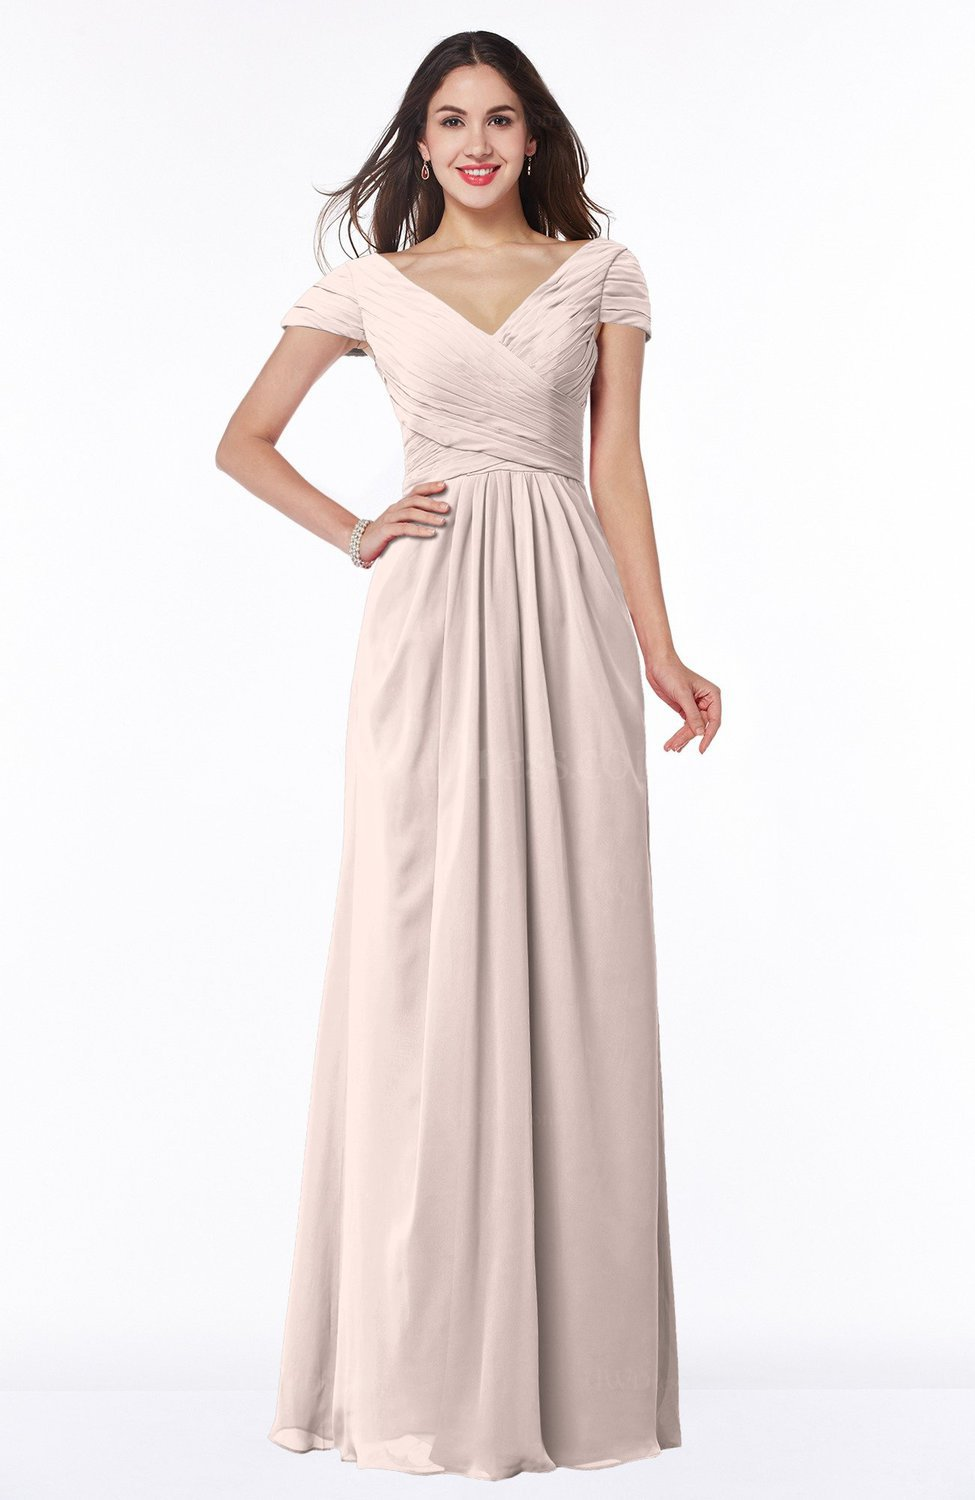 plus size bridesmaid dresses - uwdress